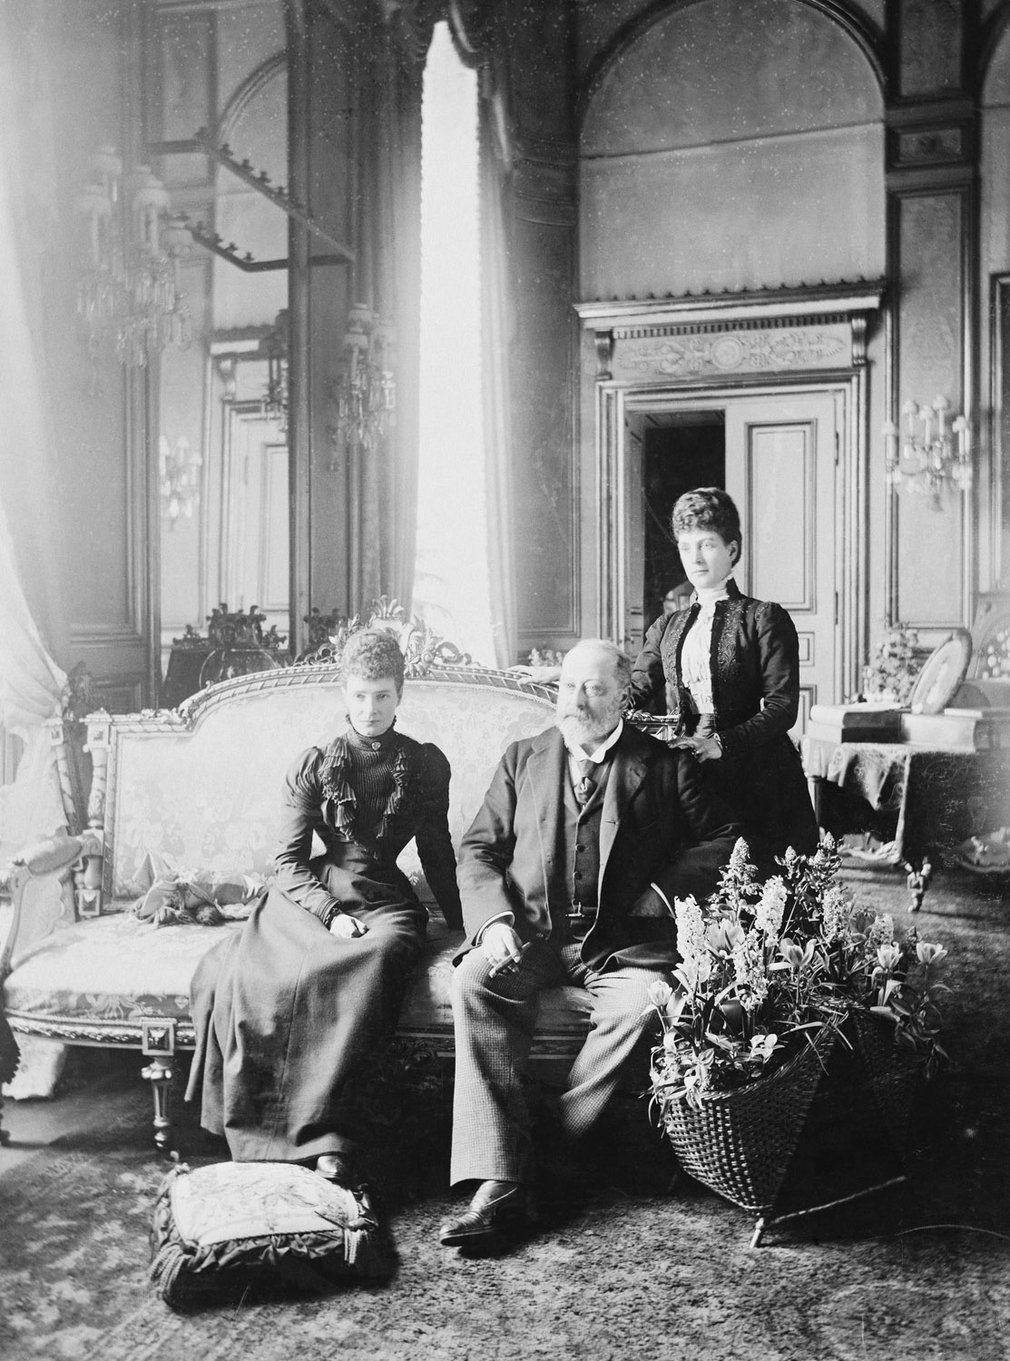 Princess Alexandra with her sister, the Dowager Empress Marie Feodorovna of Russia, and her husband, the future King Edward VII, 1900. RCIN 2927413